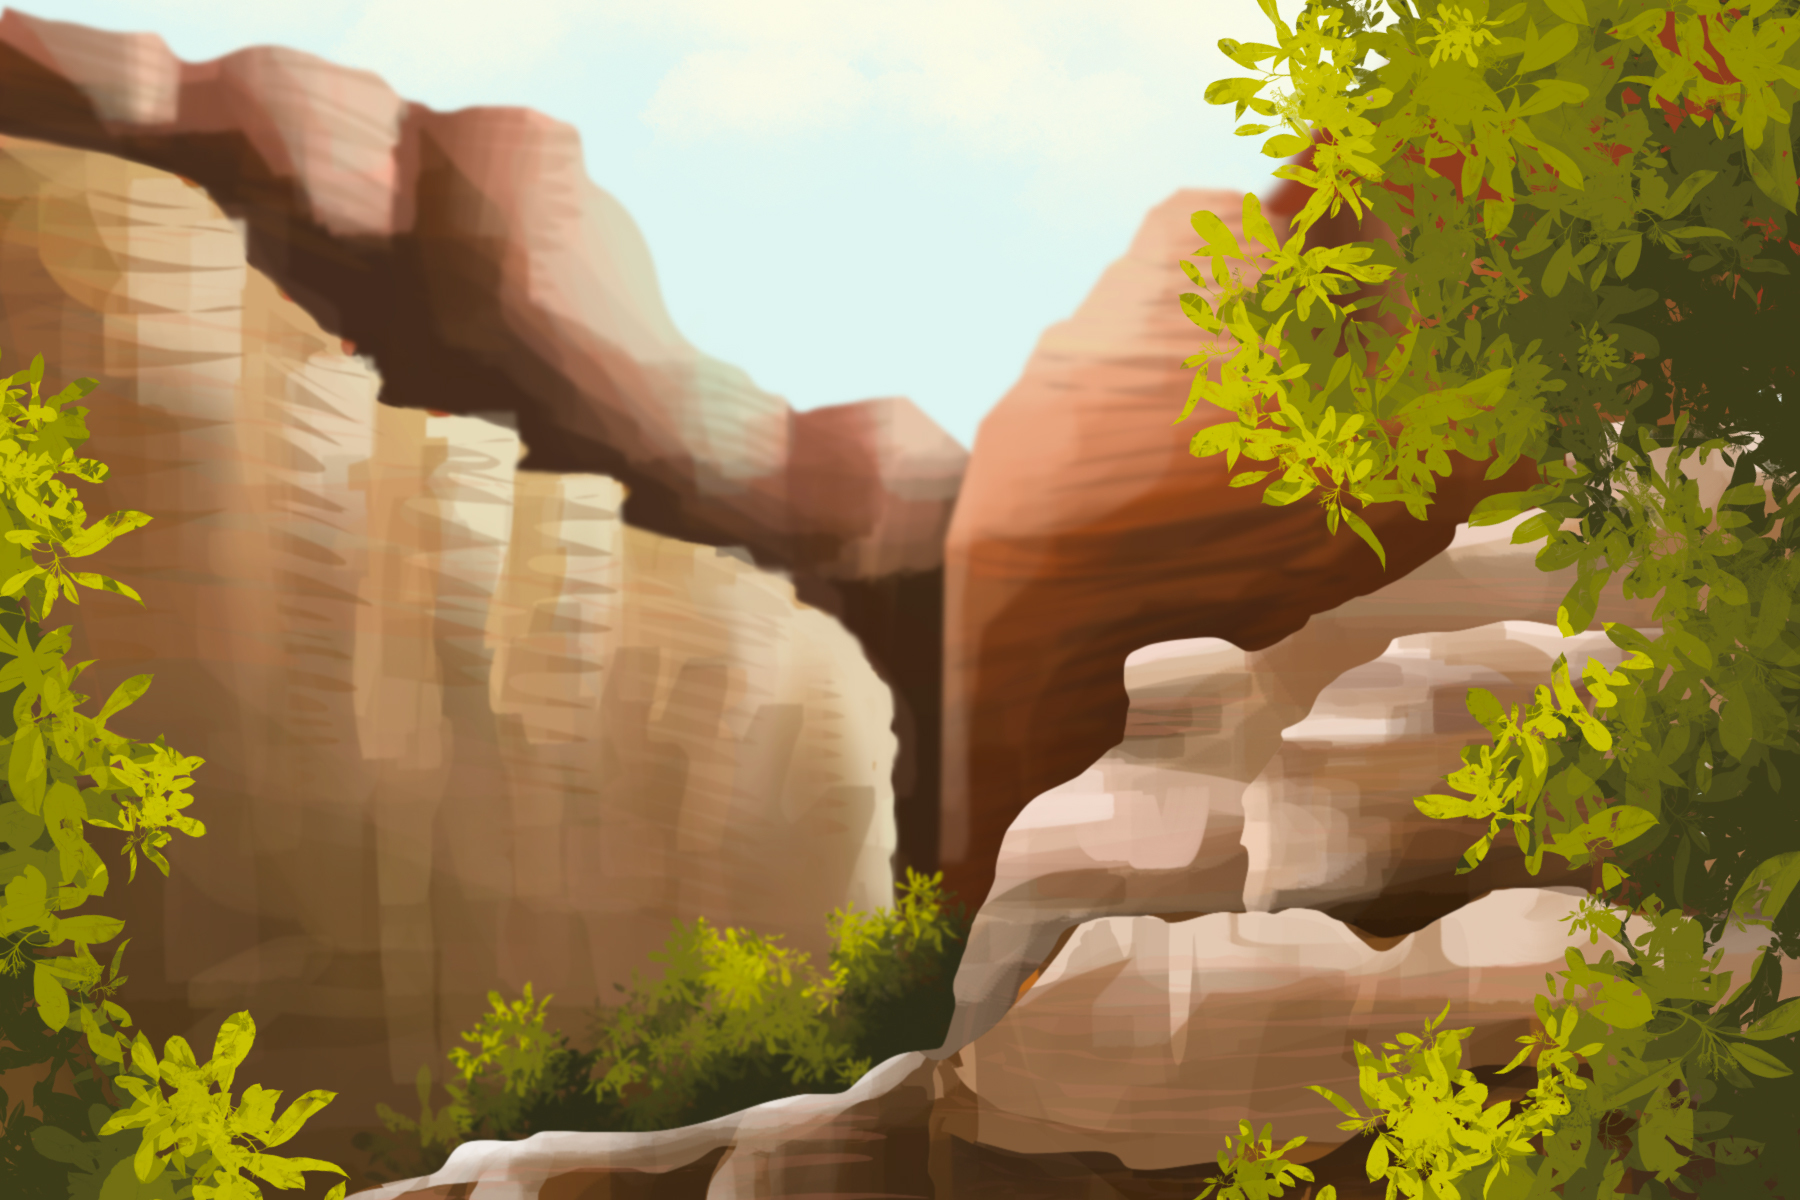 In an article about national parks, illustration by Sezi Kaya of a canyon